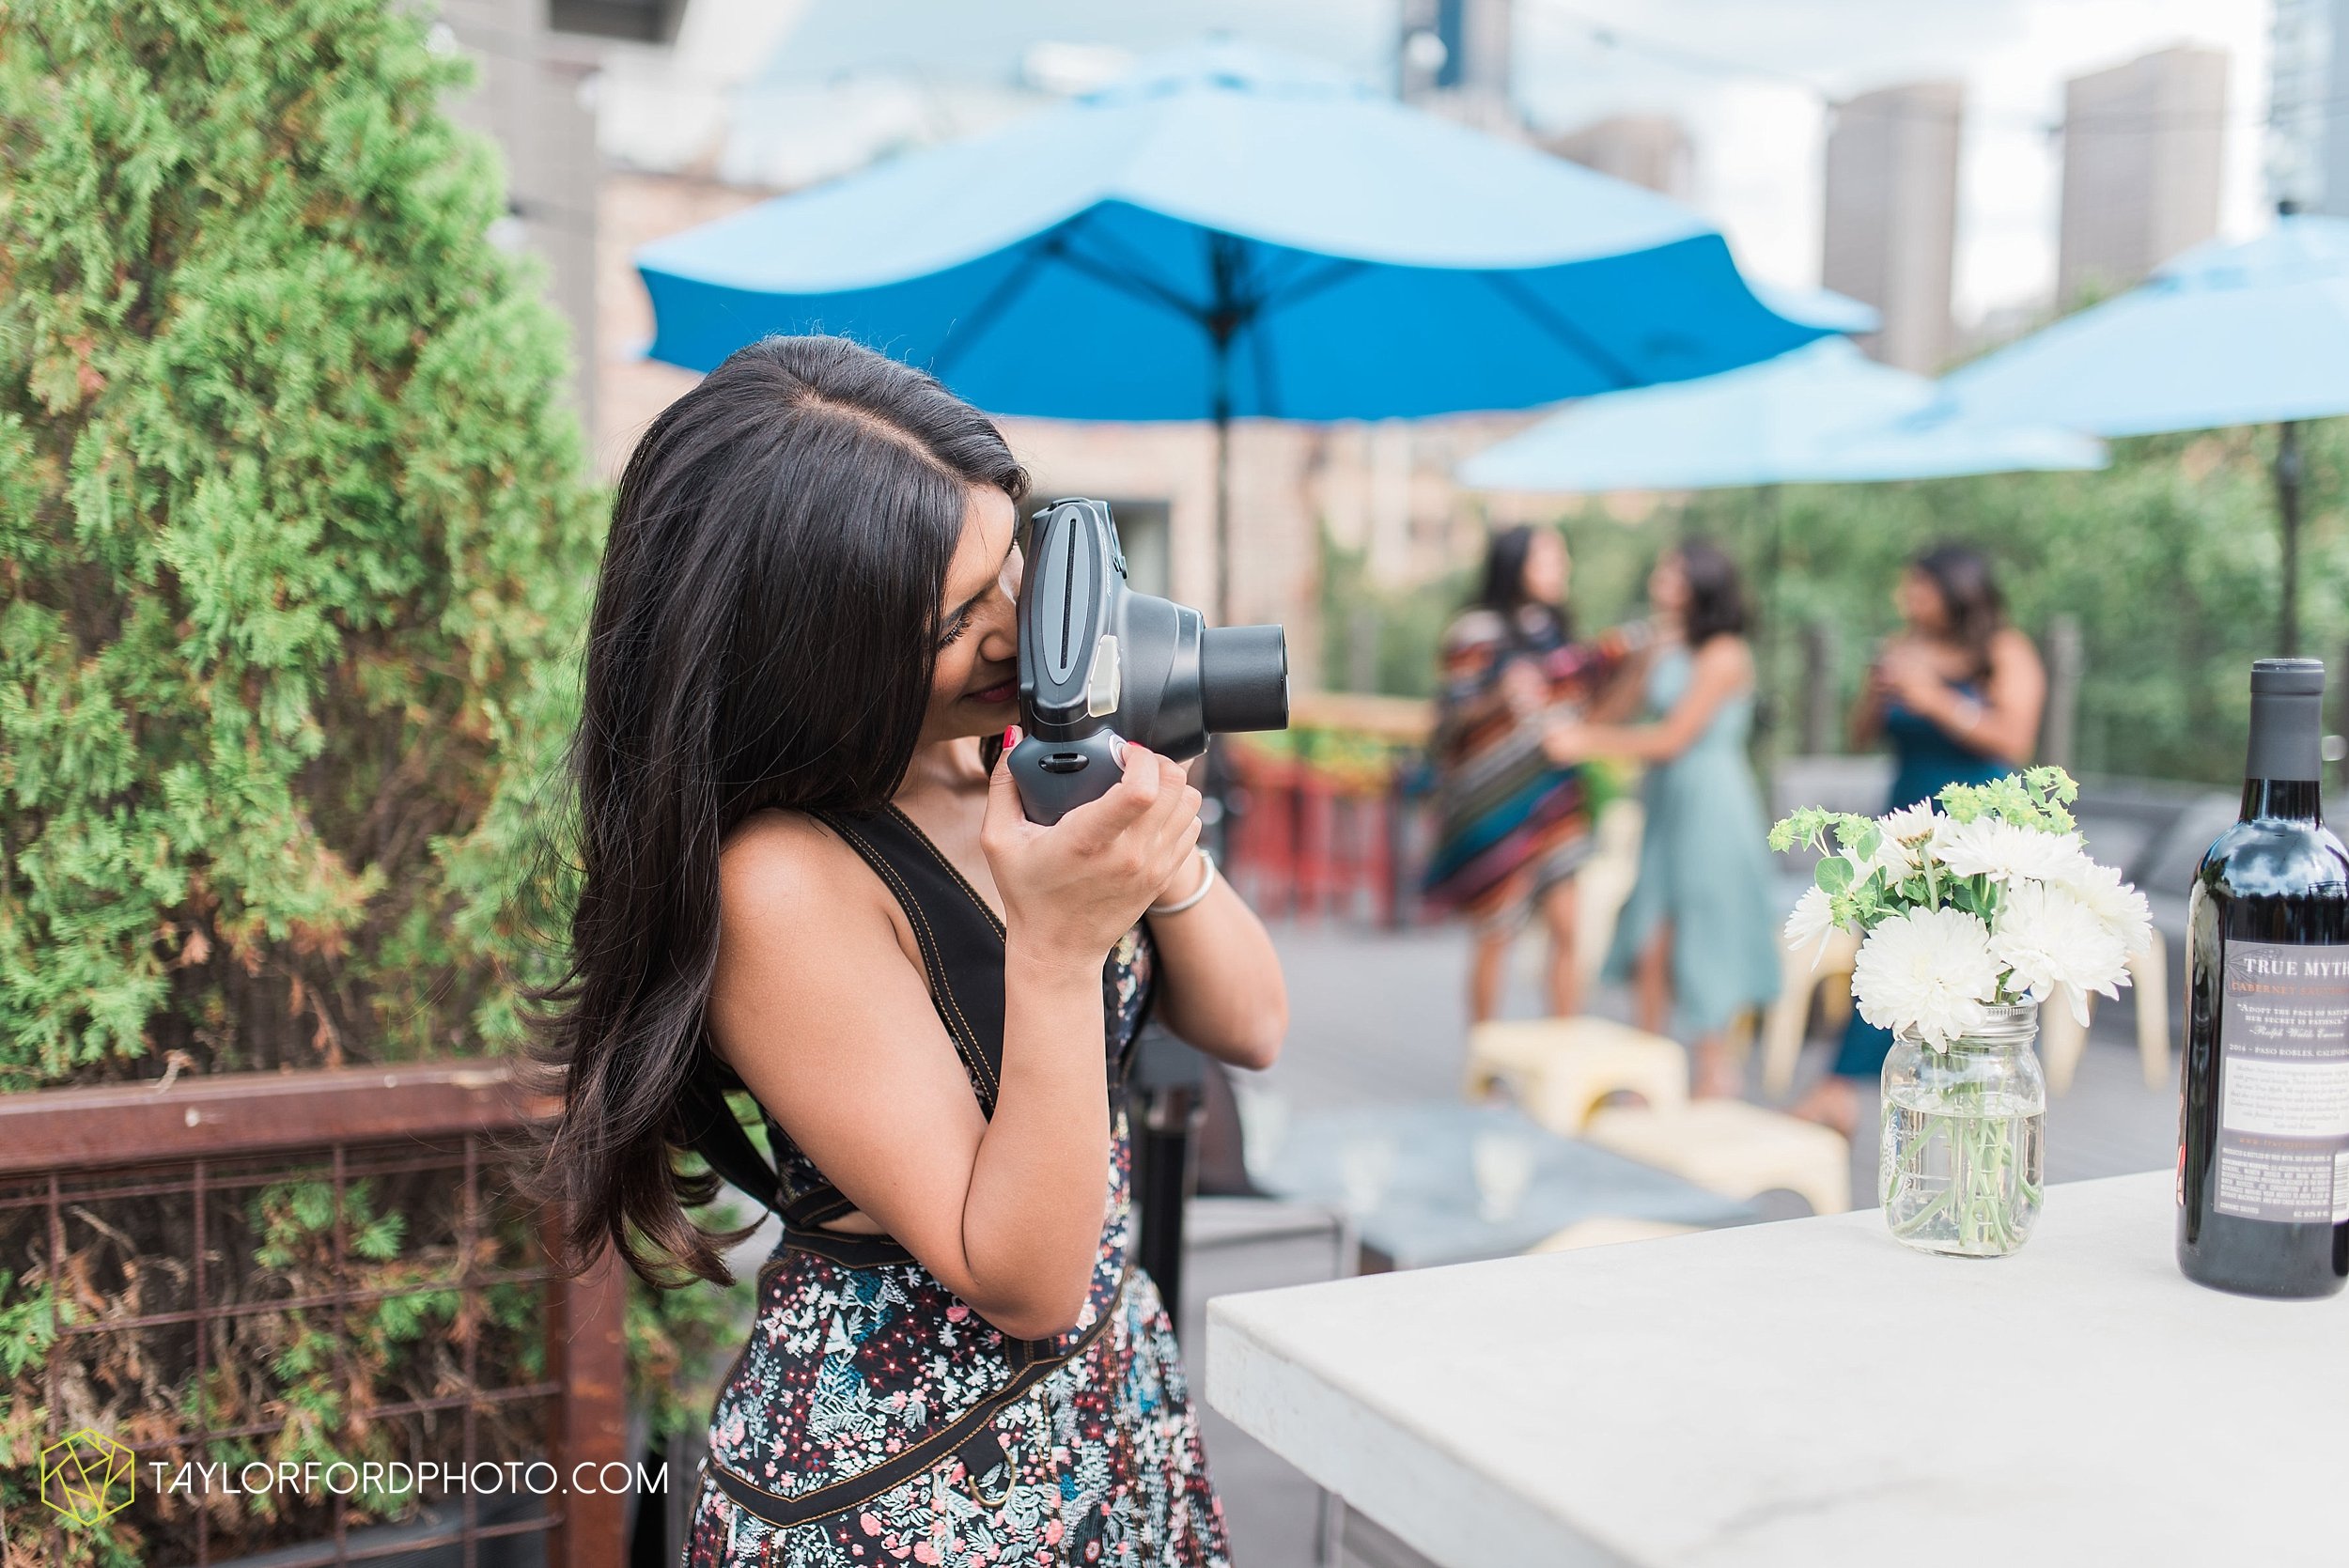 chicago-illinois-bridal-shower-wedding-engagement-photographer-Taylor-Ford-Photography-the-little-goat-diner-rooftop-indian-ceremony_5122.jpg